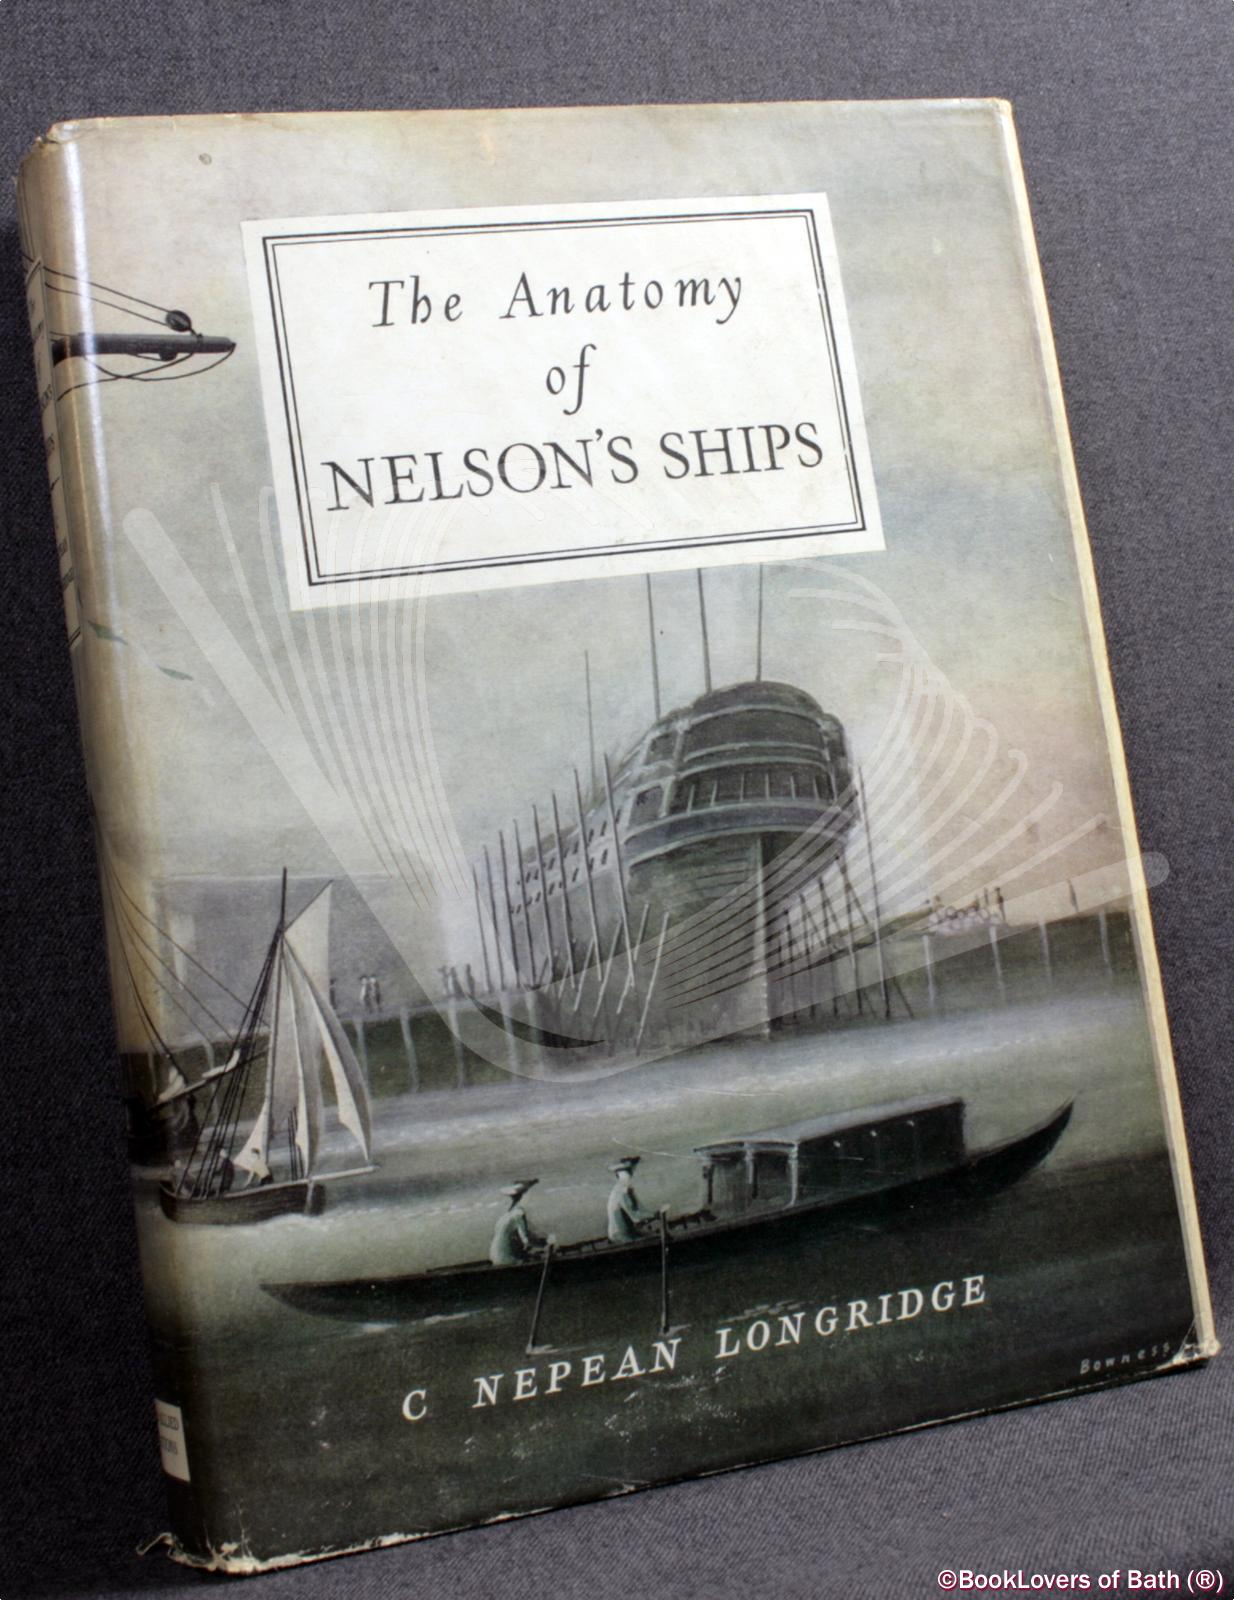 The Anatomy of Nelson's Ships - C. [Charles] Nepean Longridge